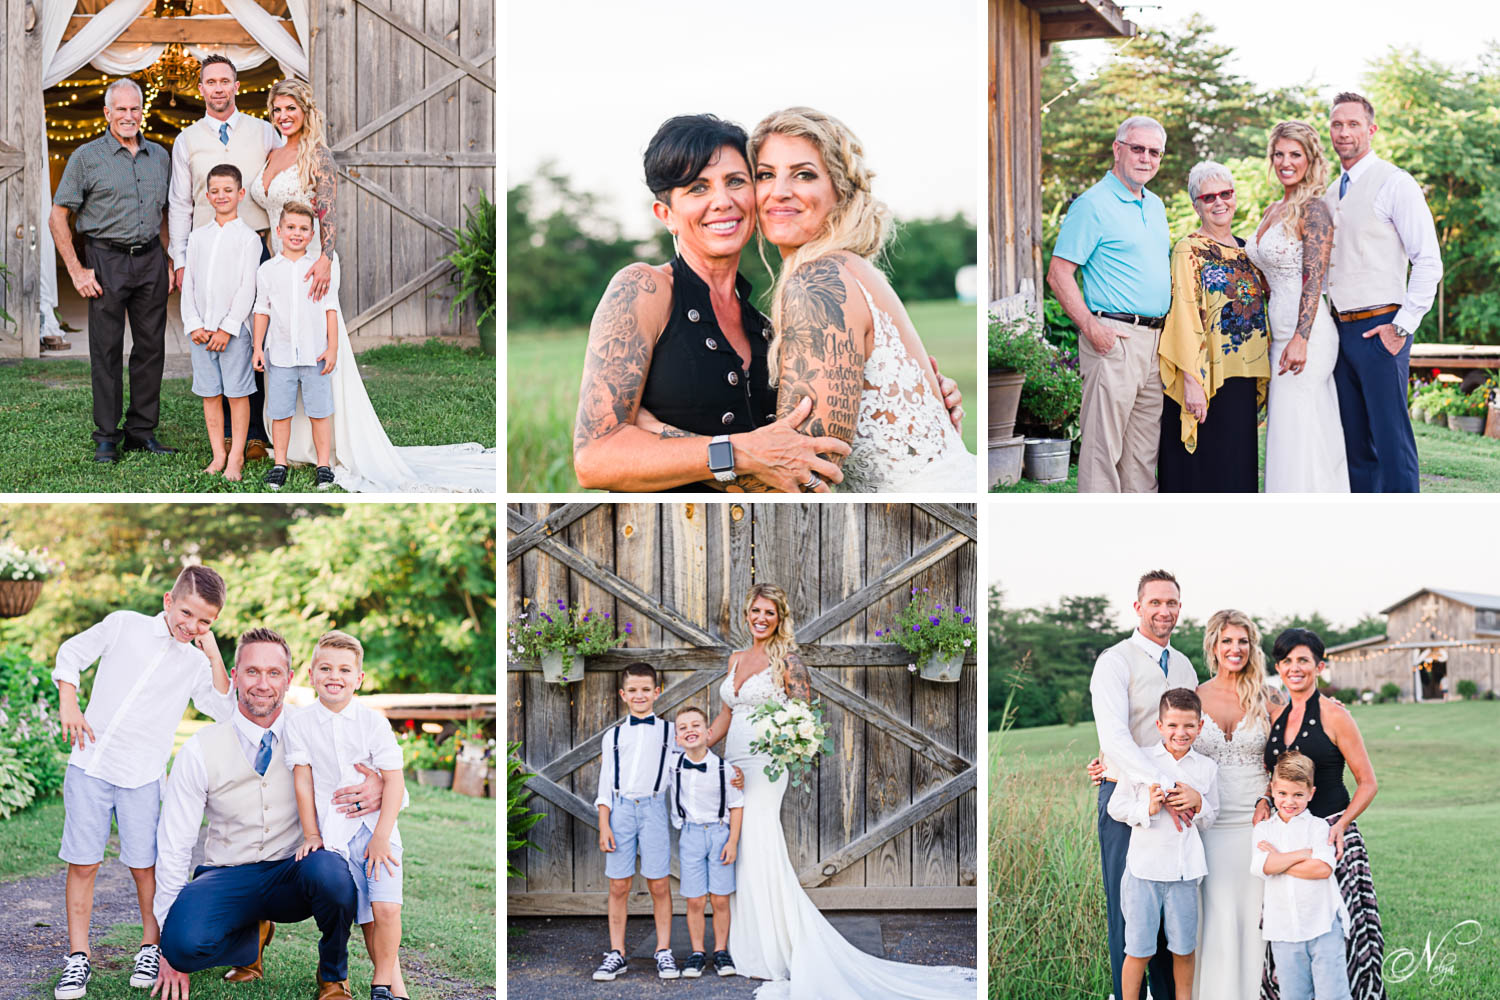 wedding guests posing in photos with the bride and groom on the Barn at Drewia Hill property in Sale Creek TN